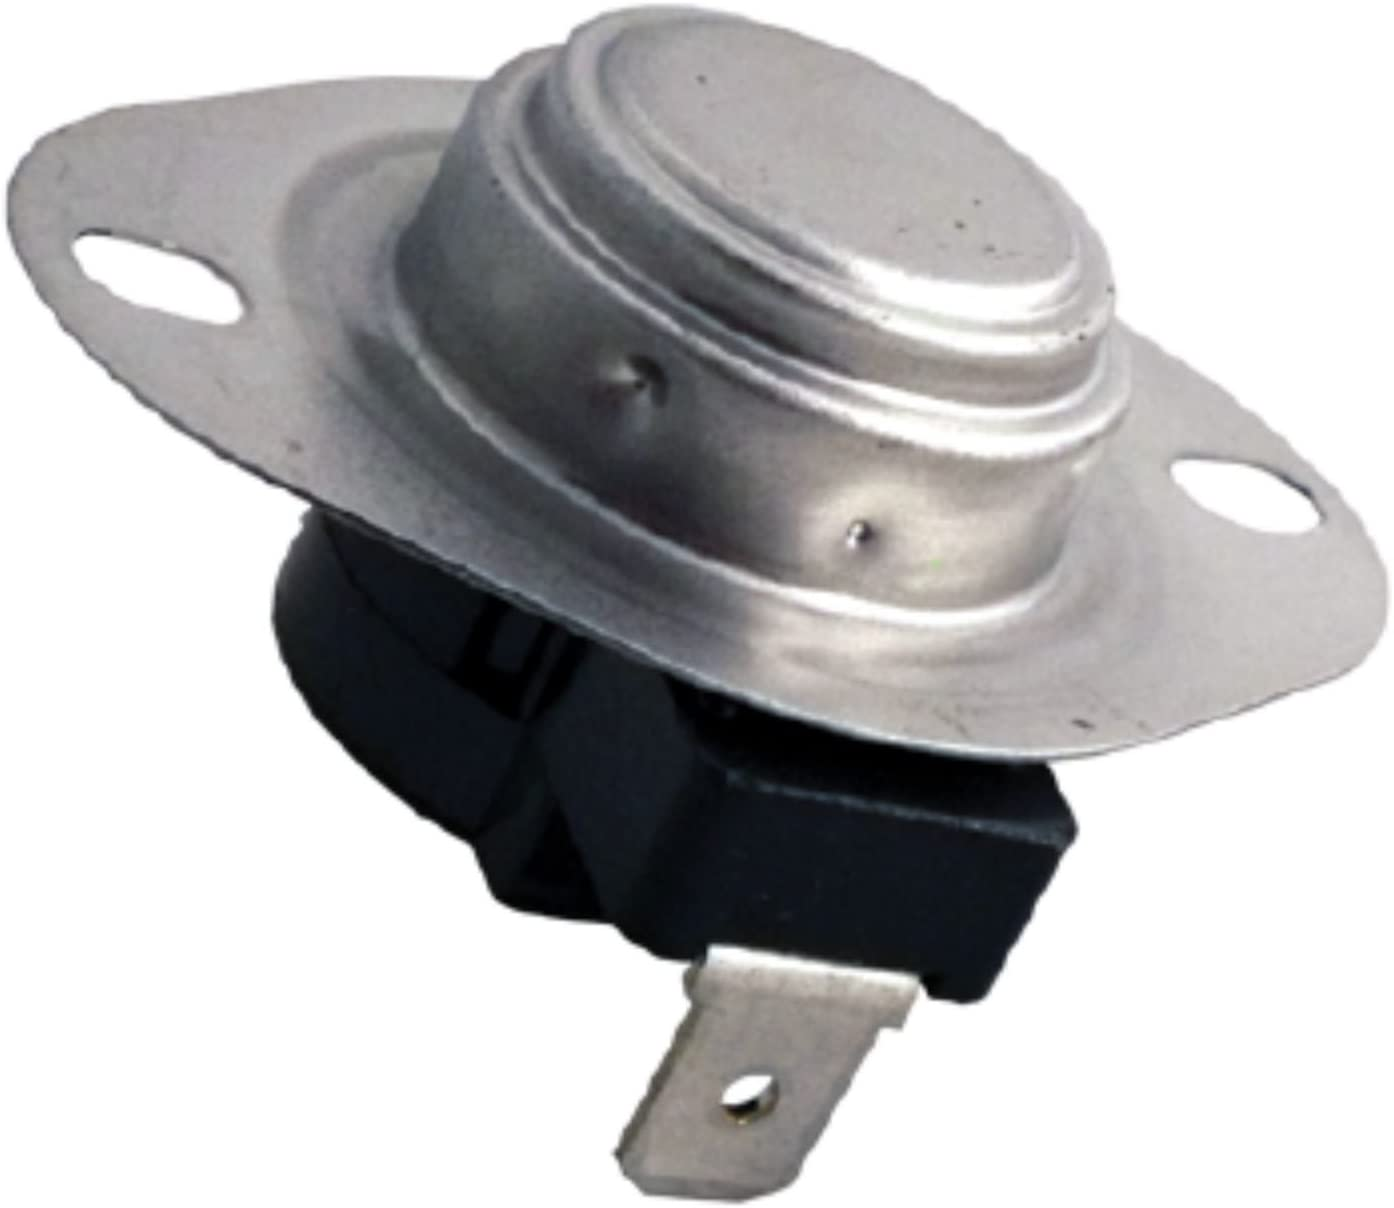 New SUPCO L155 Limit Thermostat Switch 60T11 D501759 Super special price Ranking TOP15